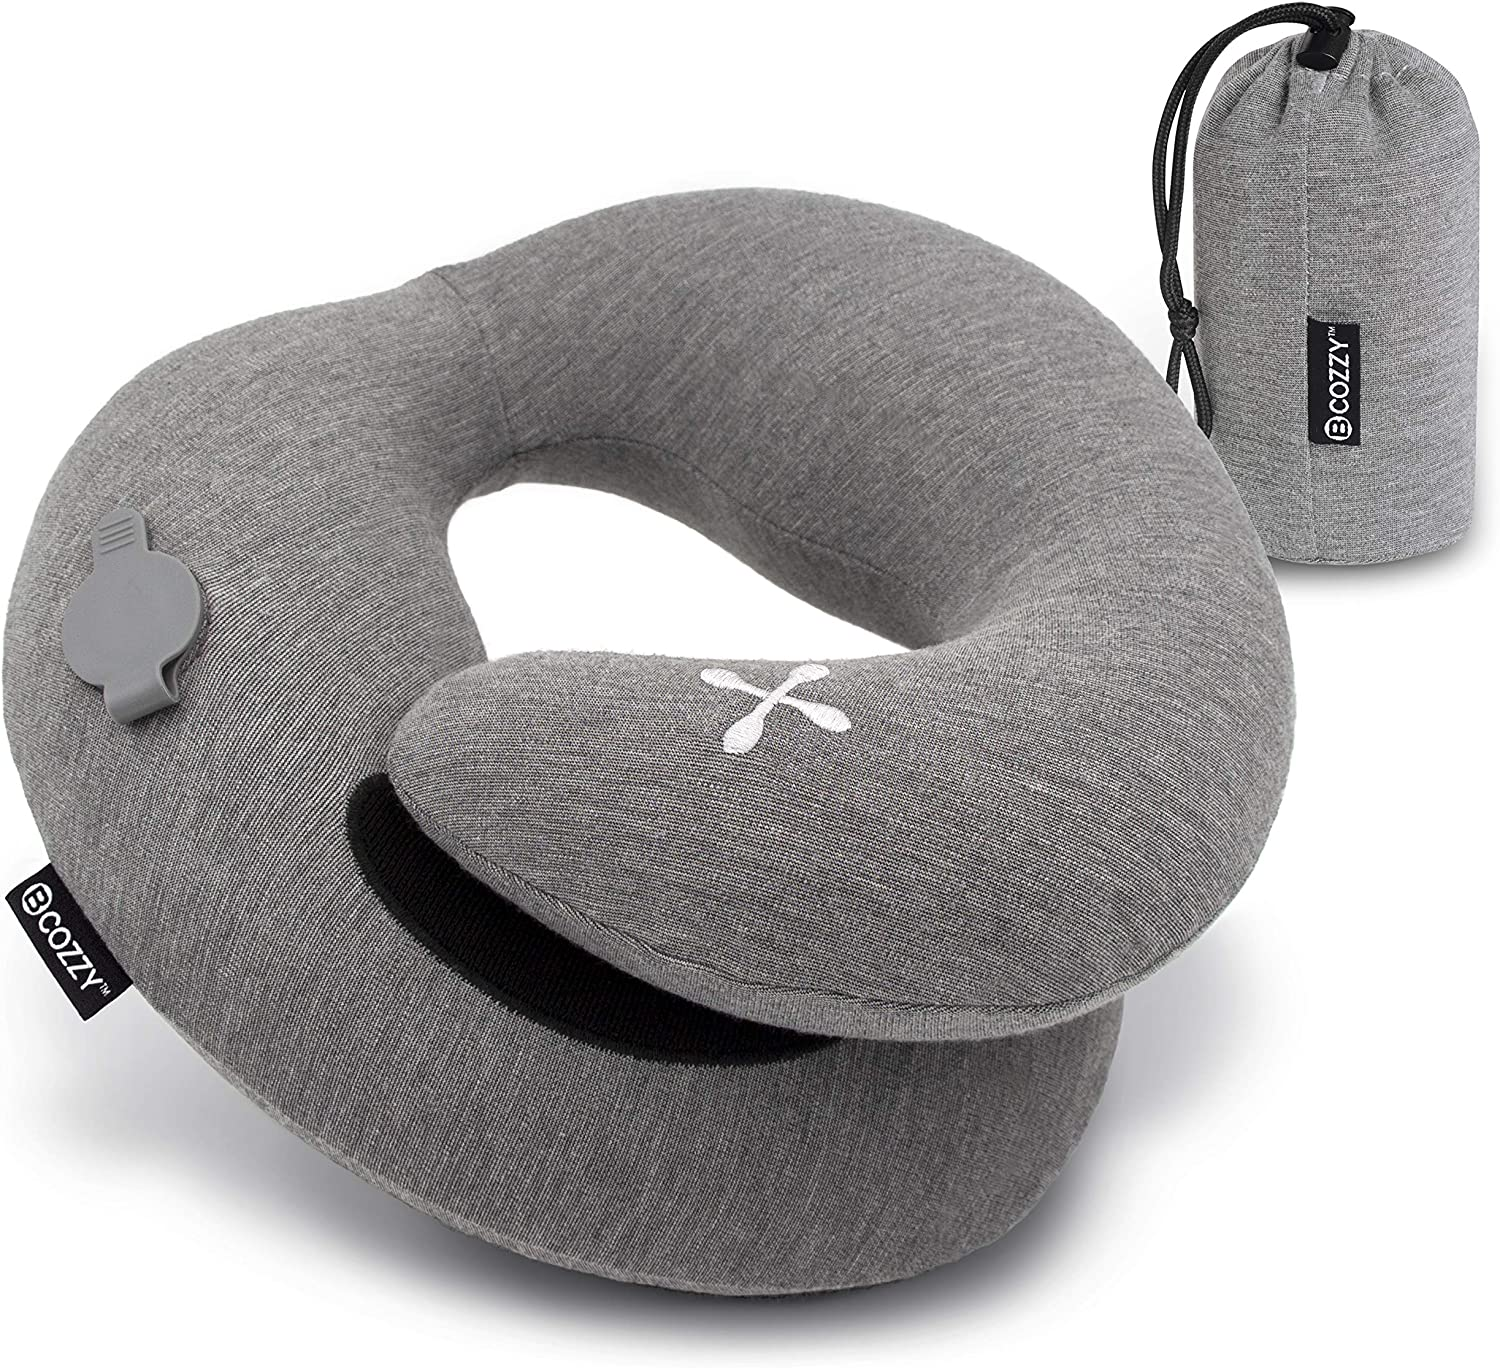 BCOZZY Chin Supporting Travel Pillow Supports the Head, Neck & Chin in Any Sitting Position. A Patented Product. (Inflatable, Gray.)